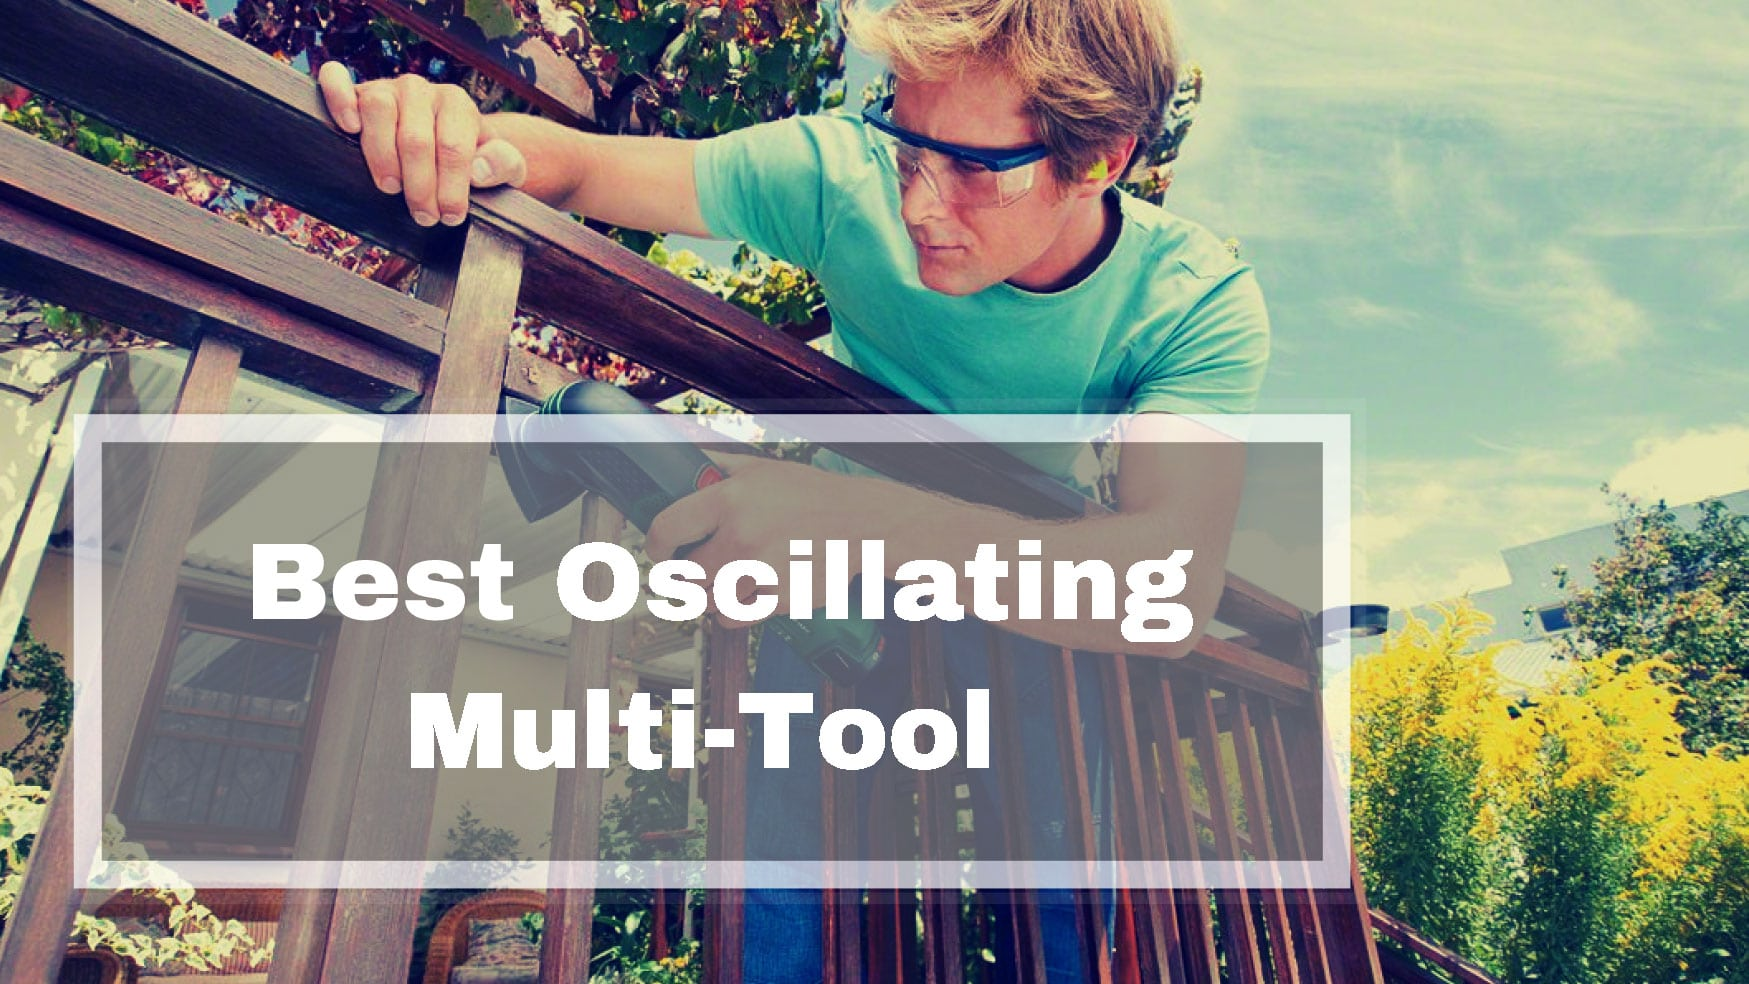 Best Oscillating Multi-Tool